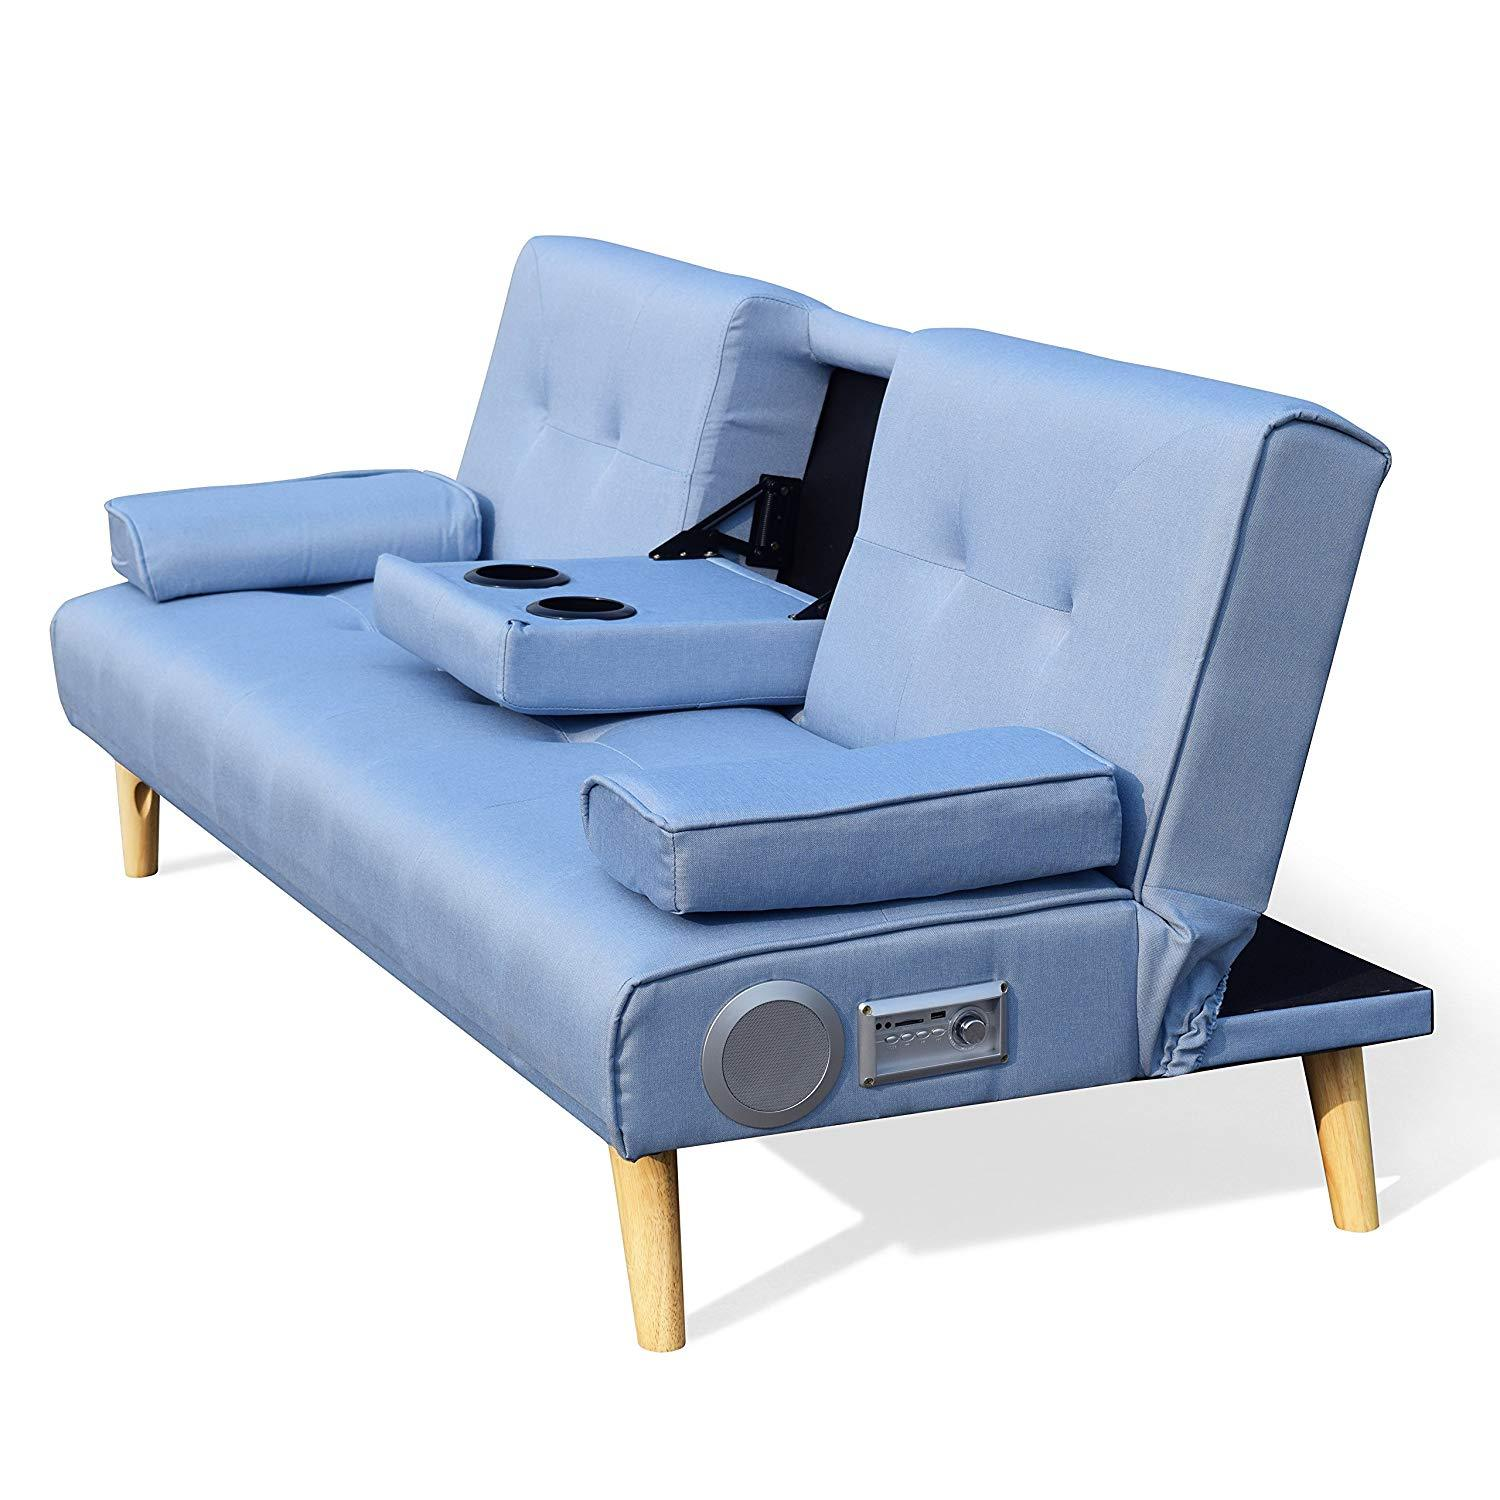 Incredible Acrux 3 Seater Sofa Bed With Built In Bluetooth Speaker Cup Holders Cushions Light Blue Fabric Ocoug Best Dining Table And Chair Ideas Images Ocougorg